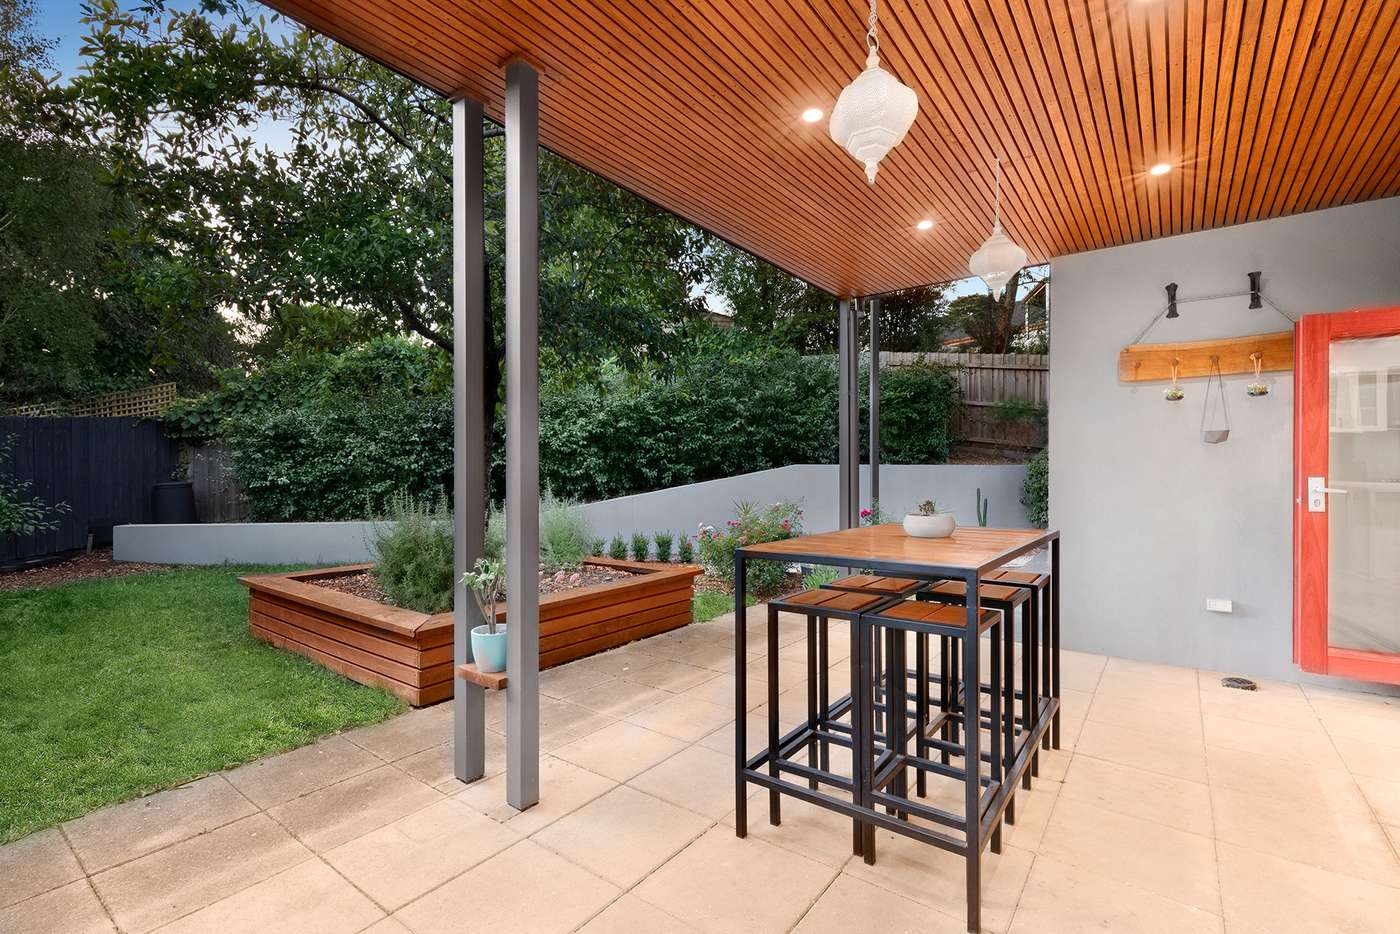 Sixth view of Homely house listing, Unit 6/15 Karingal Drive, Montmorency VIC 3094